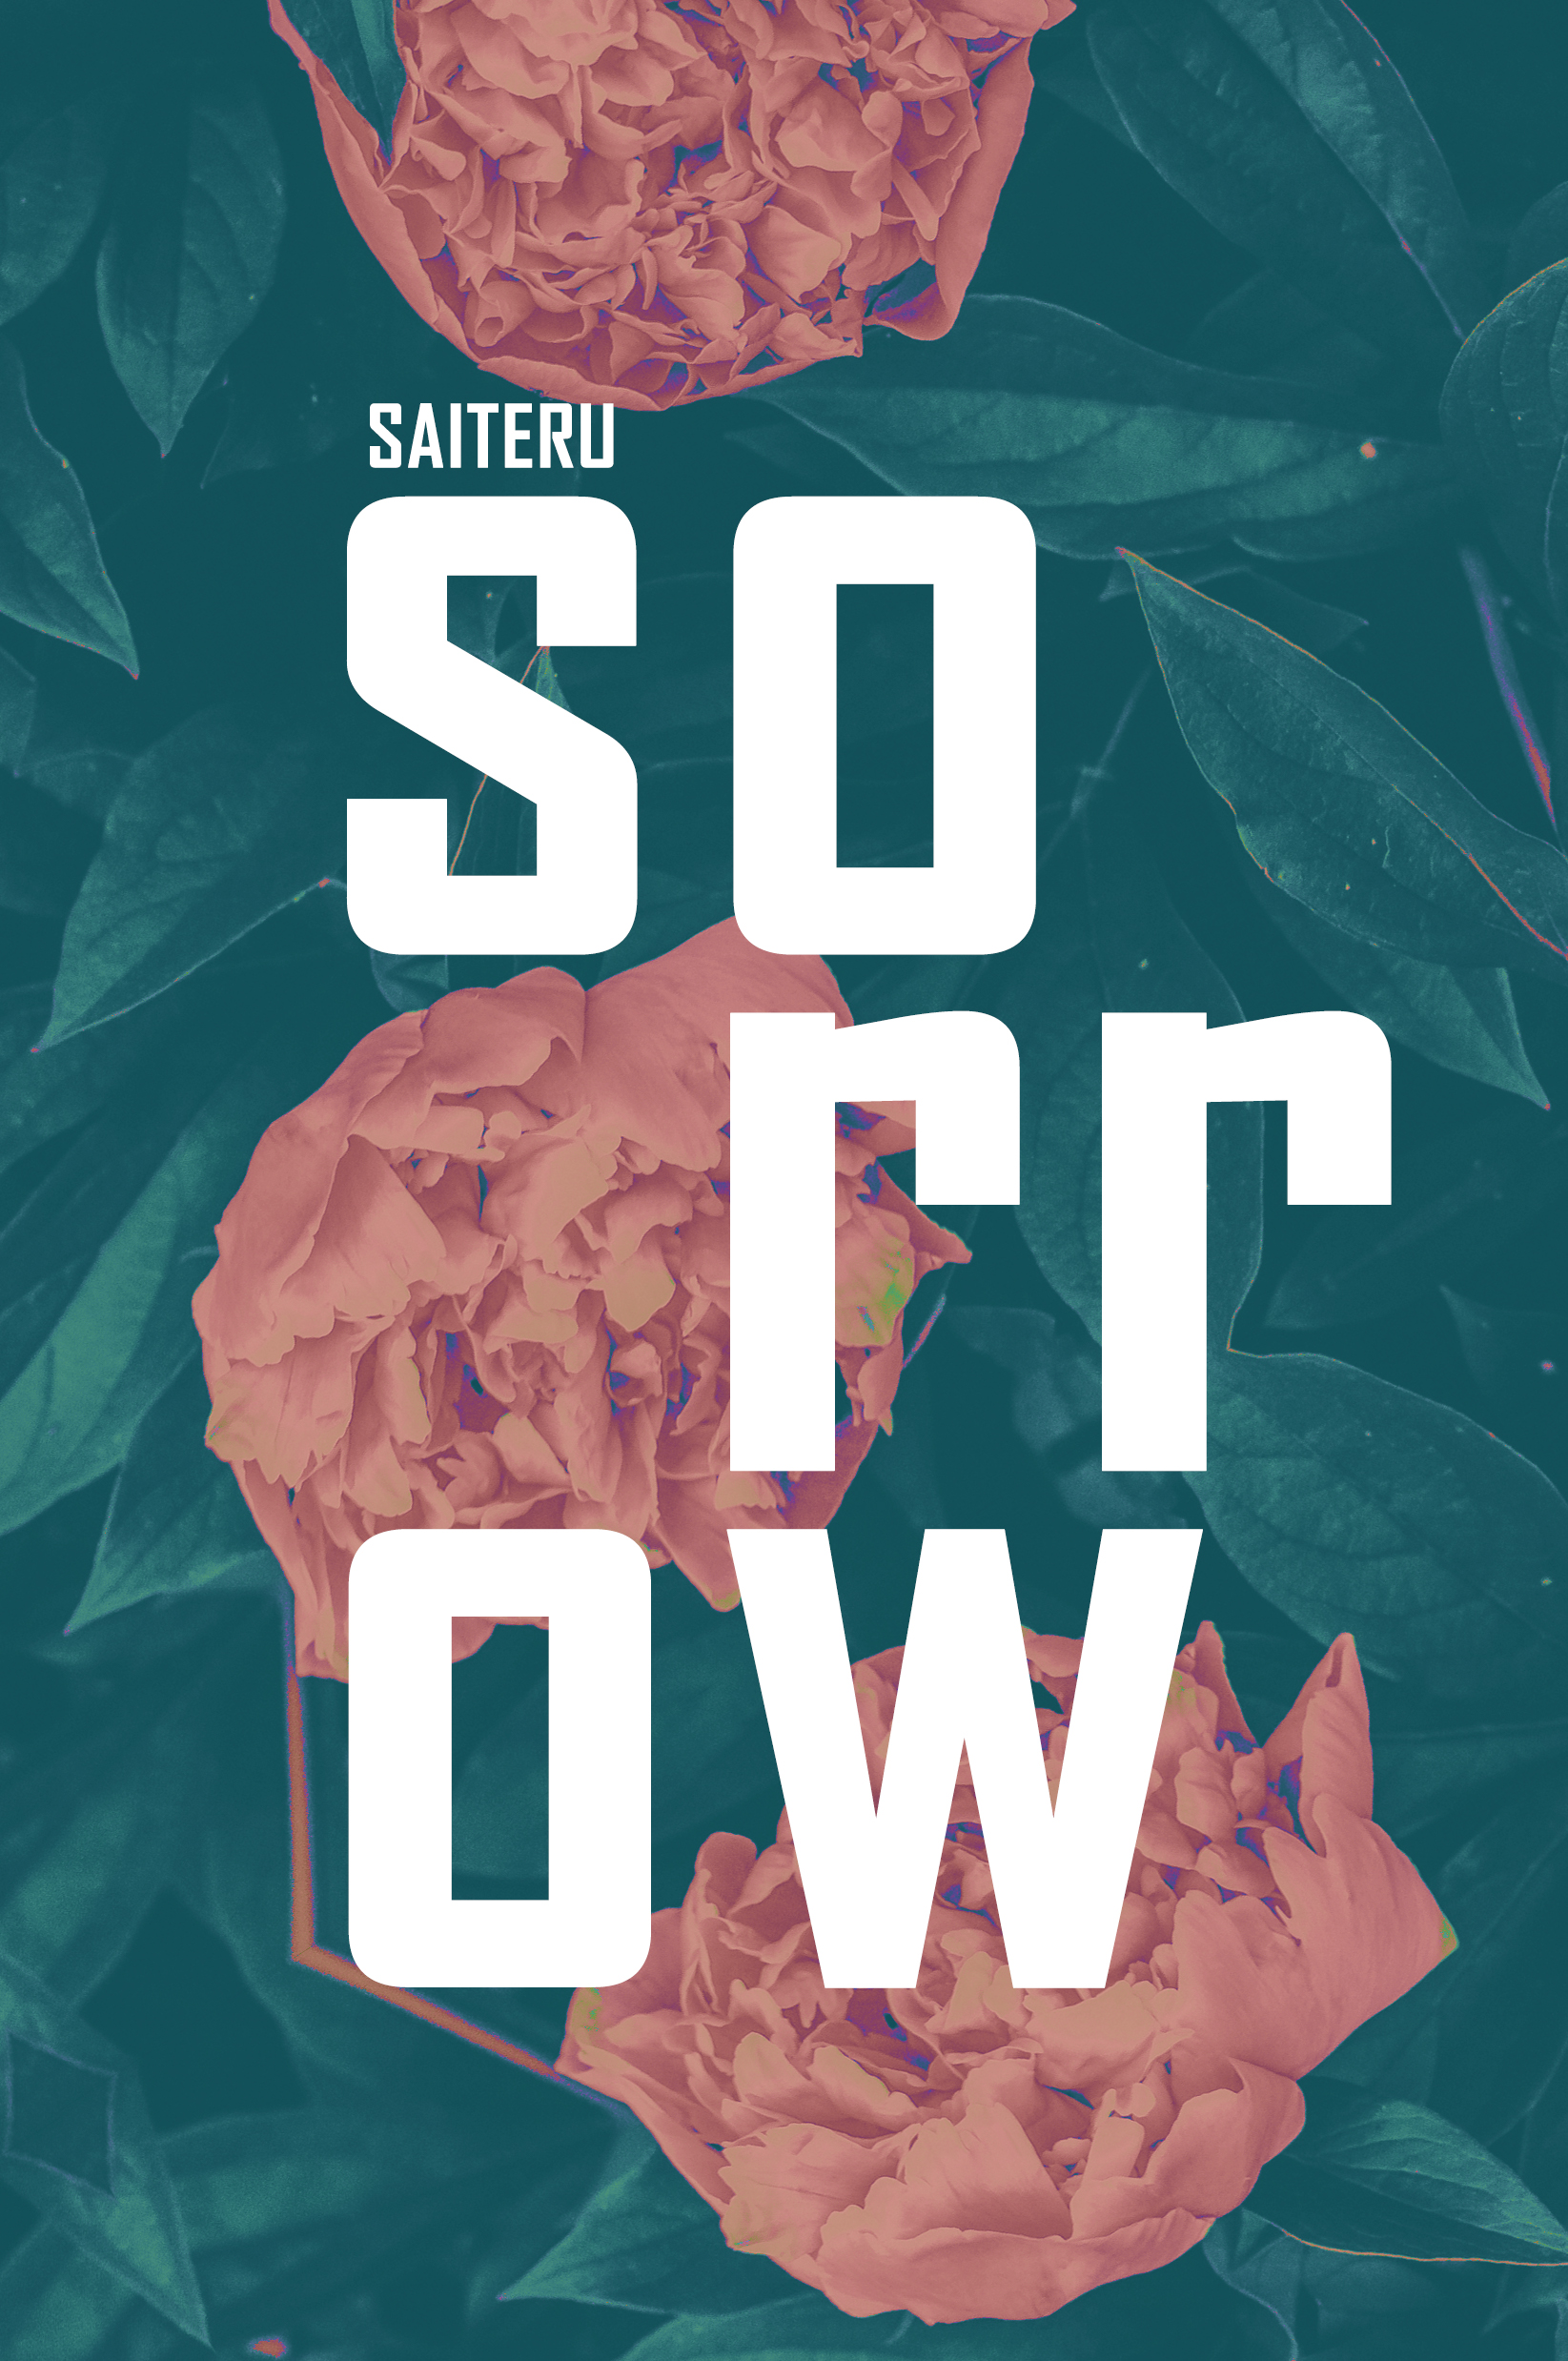 SORROW, tsh No. 1 - RELEASE DATE: JUN 4TH 2019:GENRE: Poetry, Fairy Tale Retelling, EpistolaryIn Sorrow, Cinderella is much more than a forgotten stepdaughter and chimney sweep. She is a girl with dreams of a bright future, despite the hardships she faces at home. Told in her own perspective through letters, poems, journal entries and more, Cinderella learns how to stand up for herself, how to reclaim her future and how to face her fears. She not only dares to dream of love and freedom, this Thornskinned Heroine dares to reach for it.